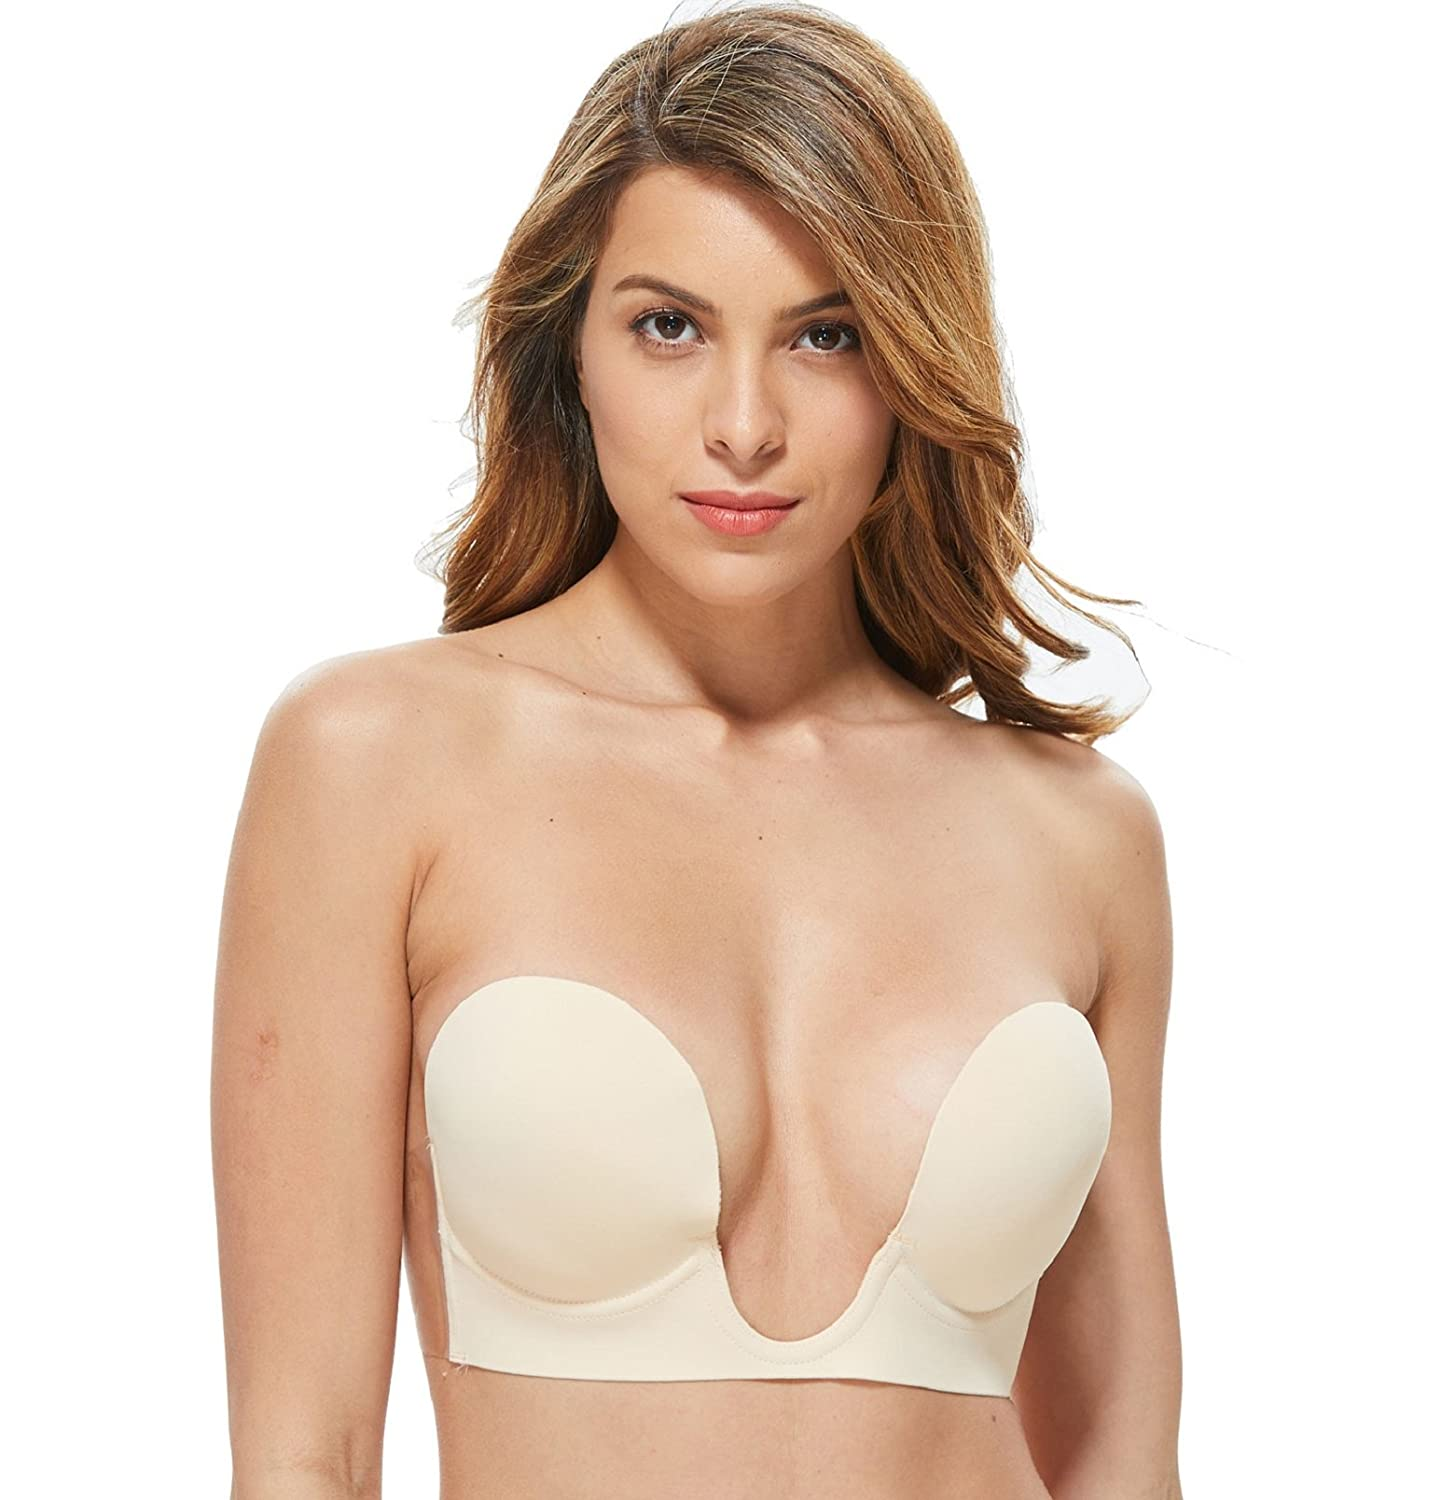 heekpek Strapless Bras Push up Women Self Adhesive Silicone Invisible Bra Resuable Seamless Backless Plunge Bra